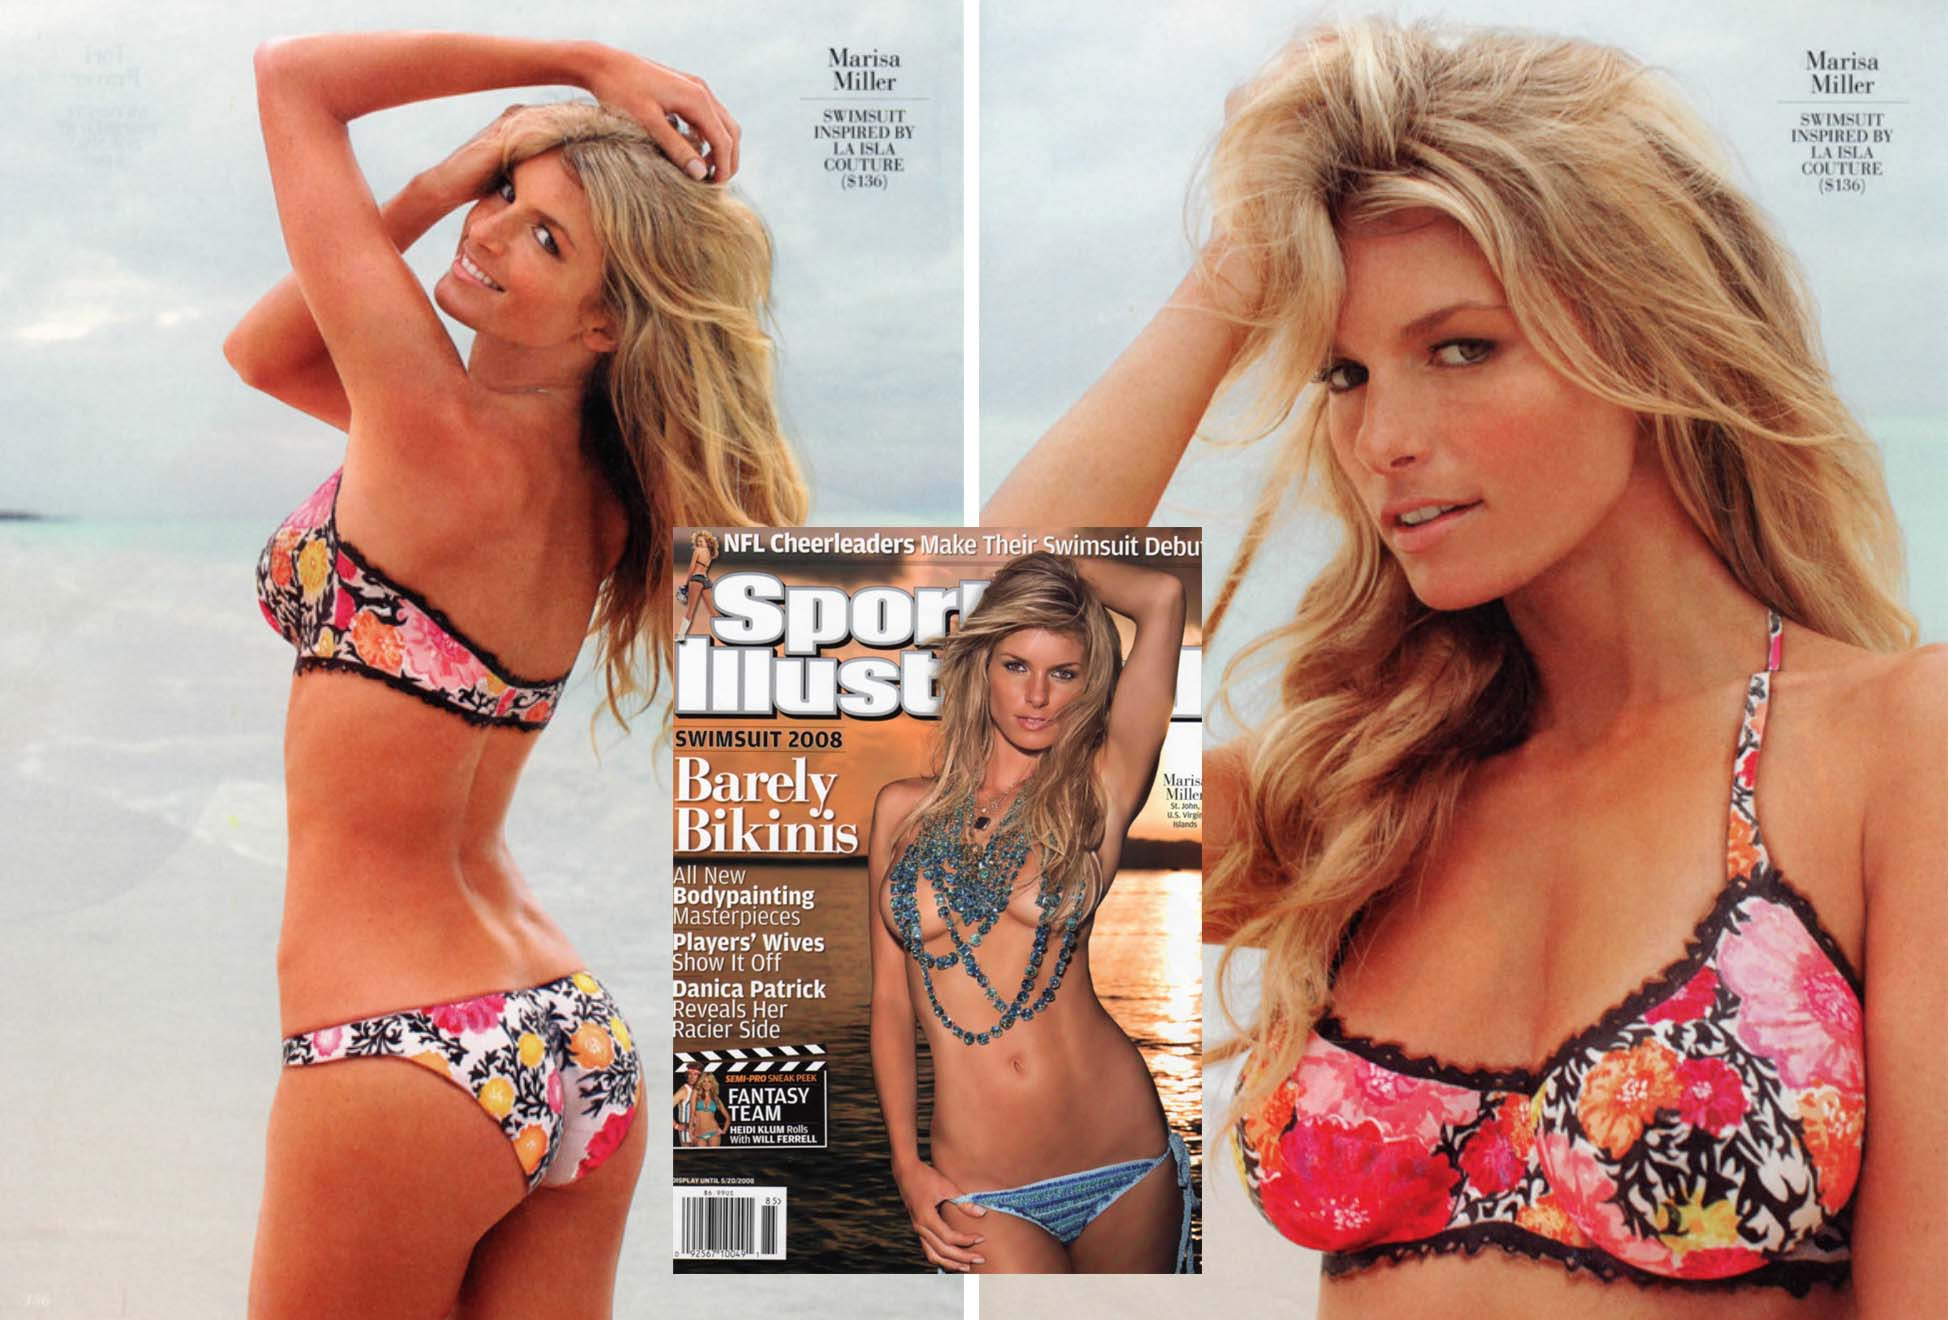 Sport's Illustrated Swimsuit Issue. La Isla. New Floral Print Bikini as seen painted directly onto cover model Marissa Miller.